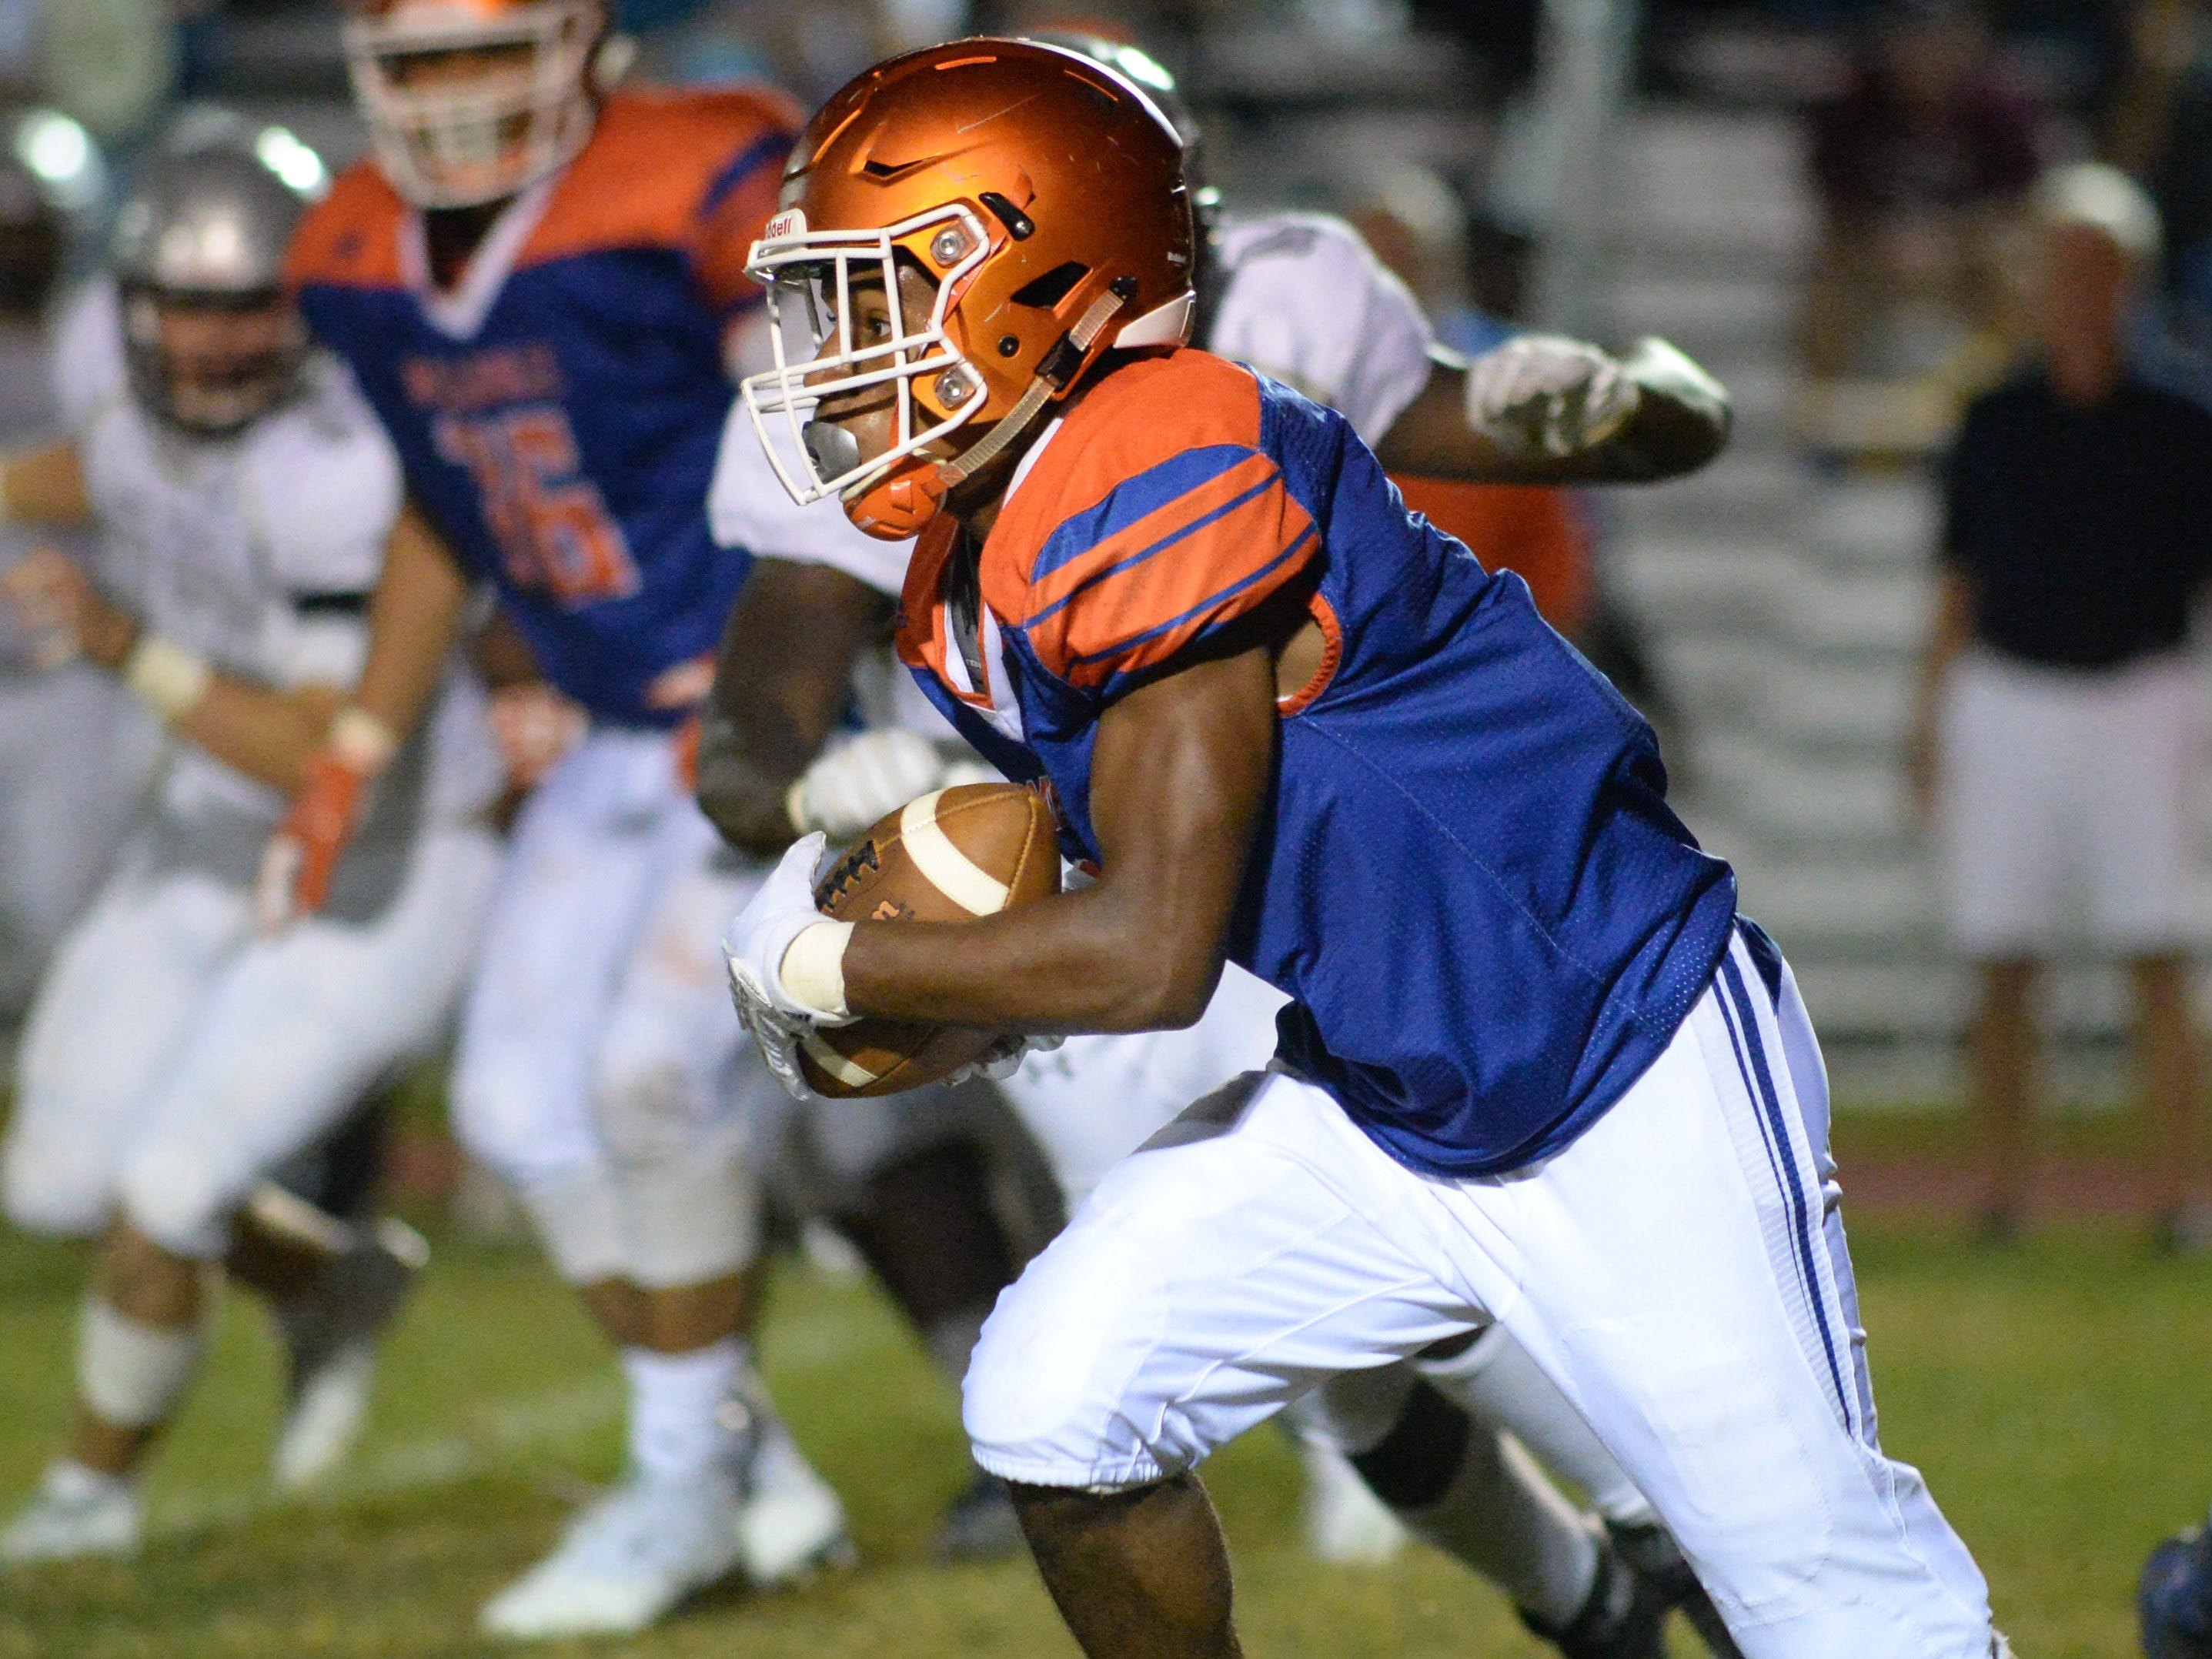 Millville's Cartier Gray carries the ball against St. Peter's Prep during the season opening football game at Millville Memorial High School, Friday, Aug. 31, 2018.